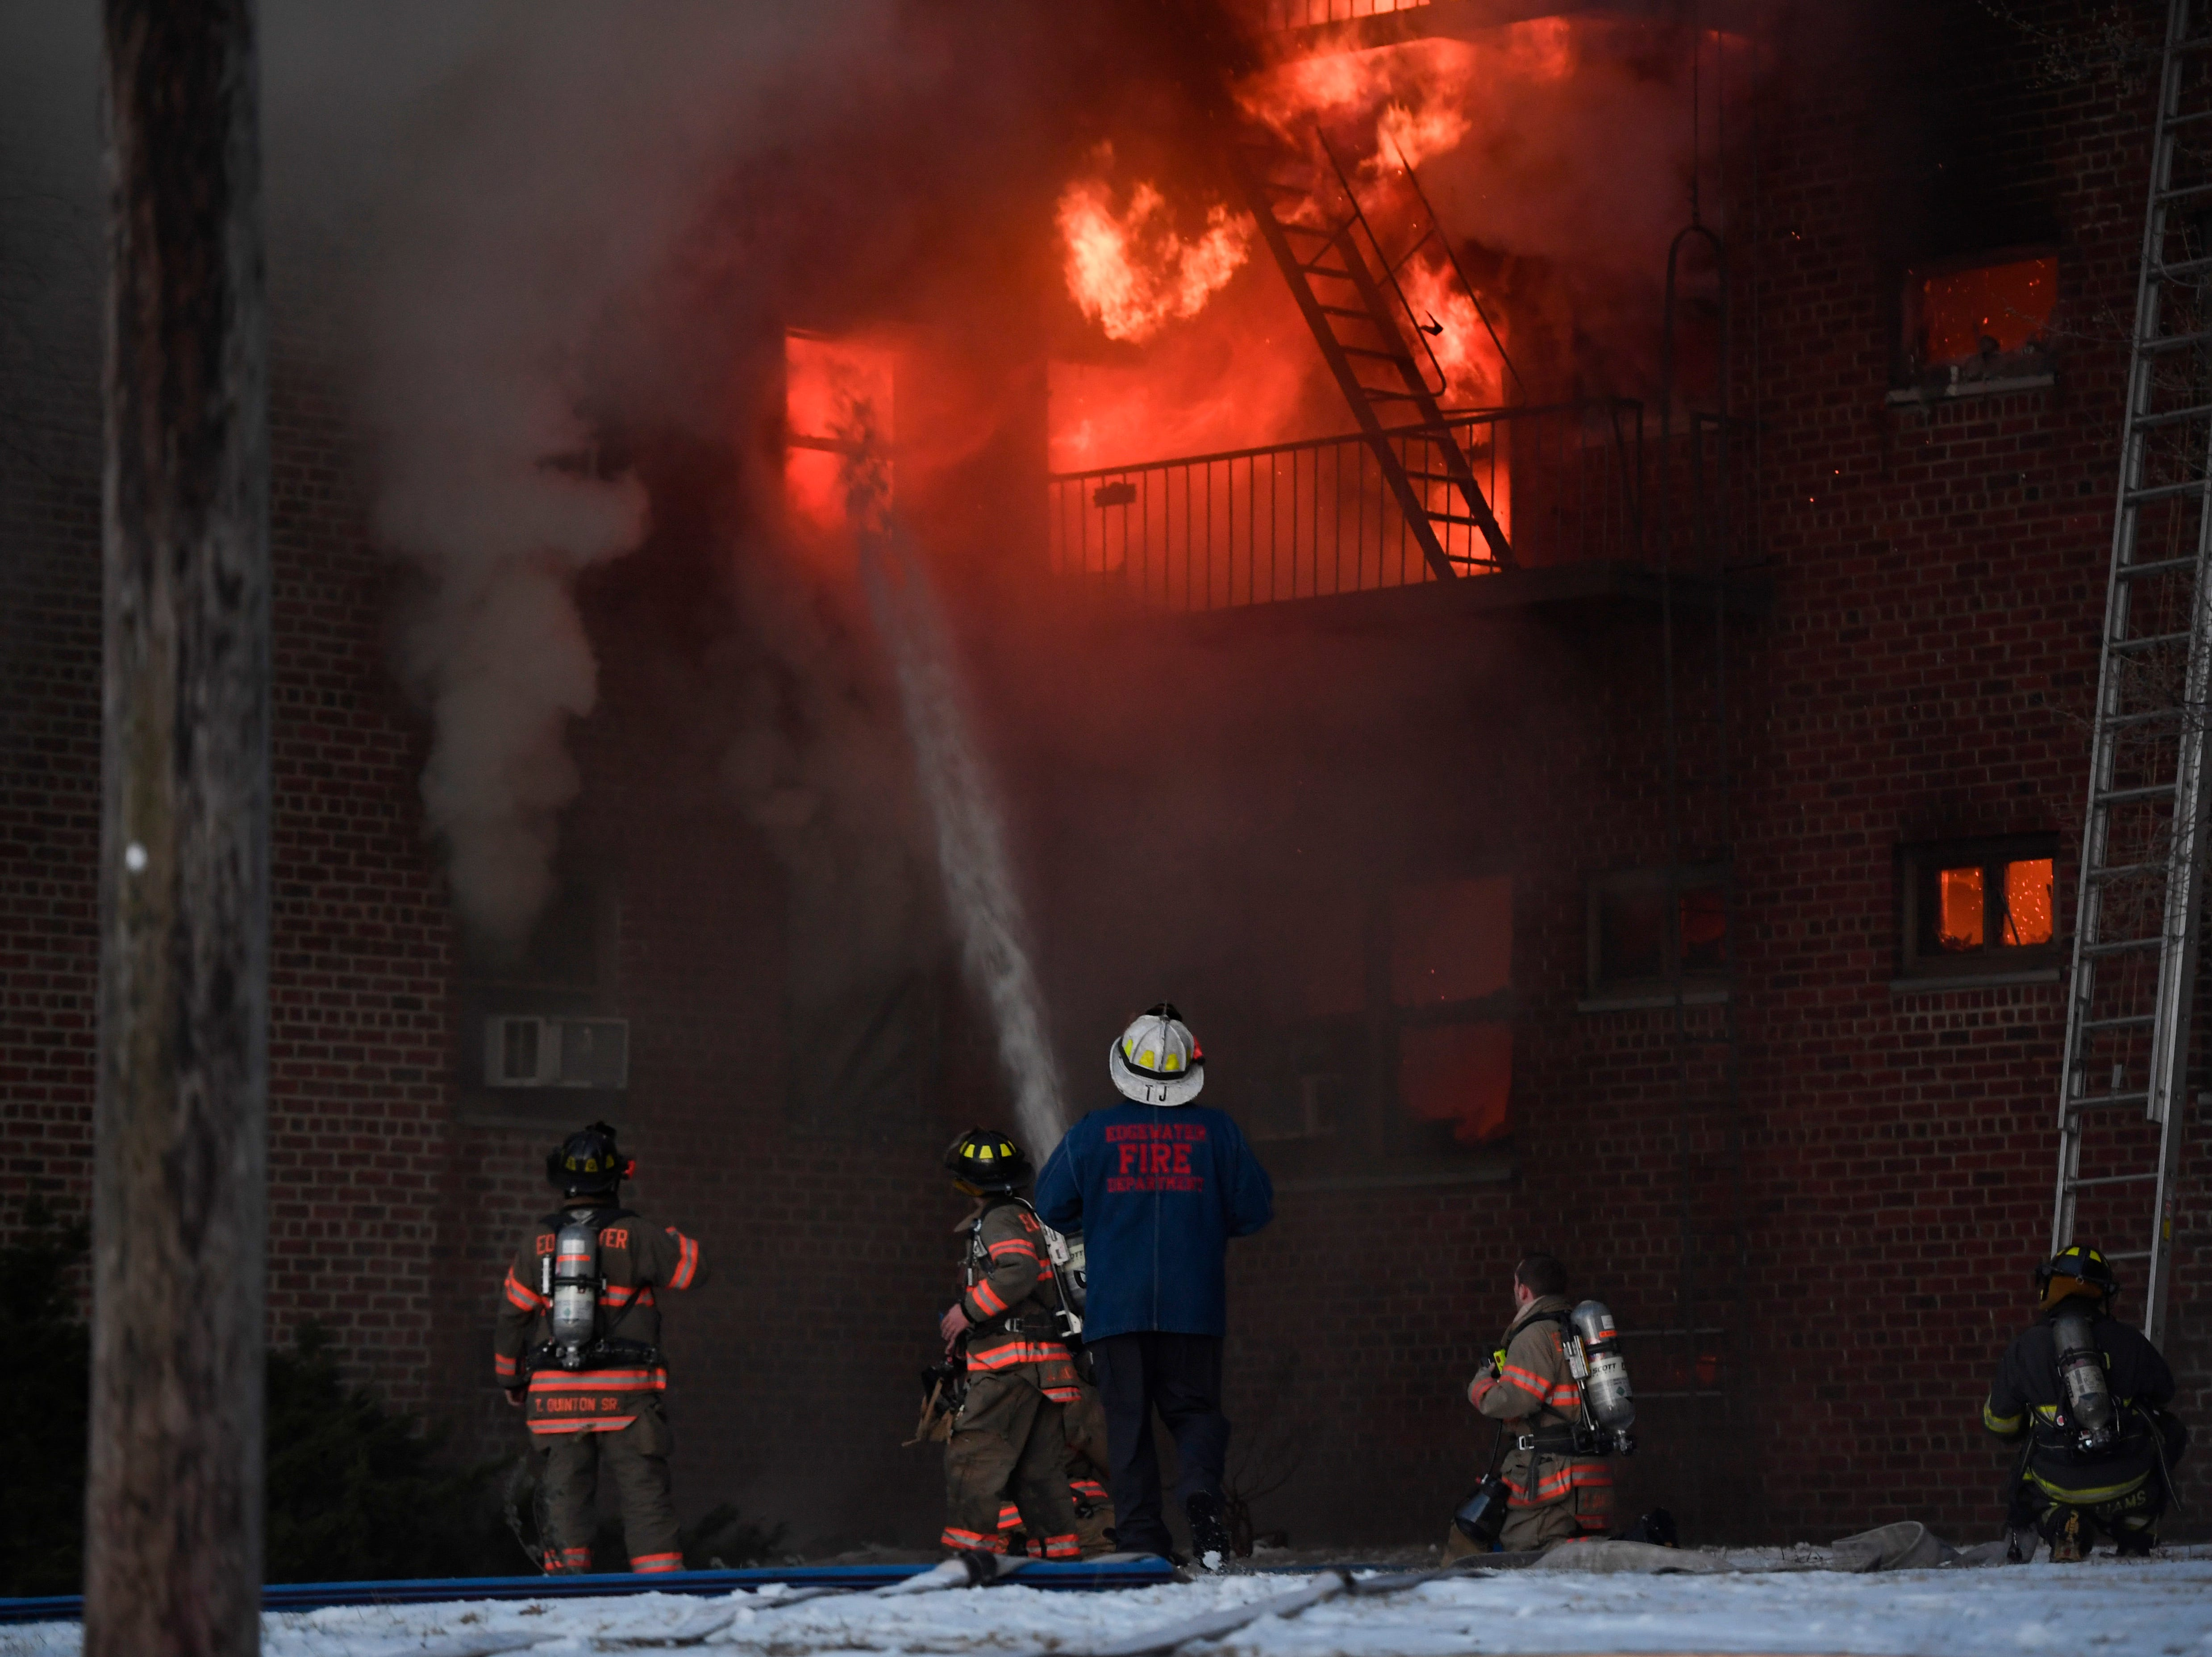 Edgewater firefighters work on a fire in an apartment building on Edwin avenue in Fort Lee on Thursday, Feb. 14, 2019.